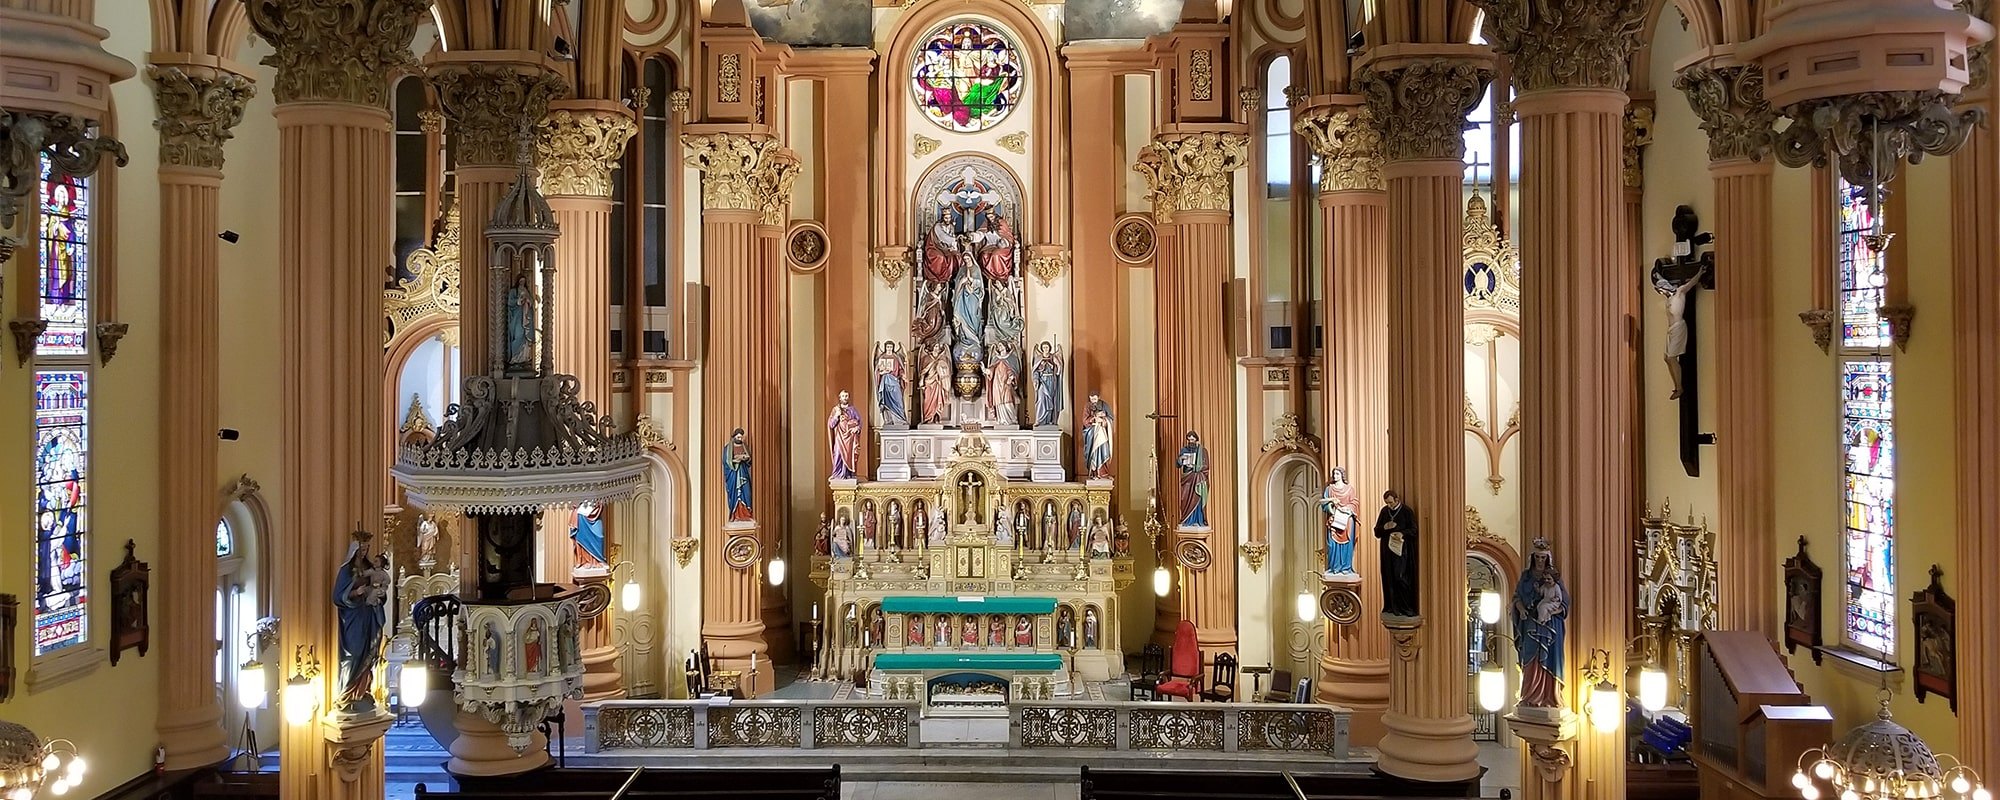 St. Mary's Assumption Church in New Orleans, LA